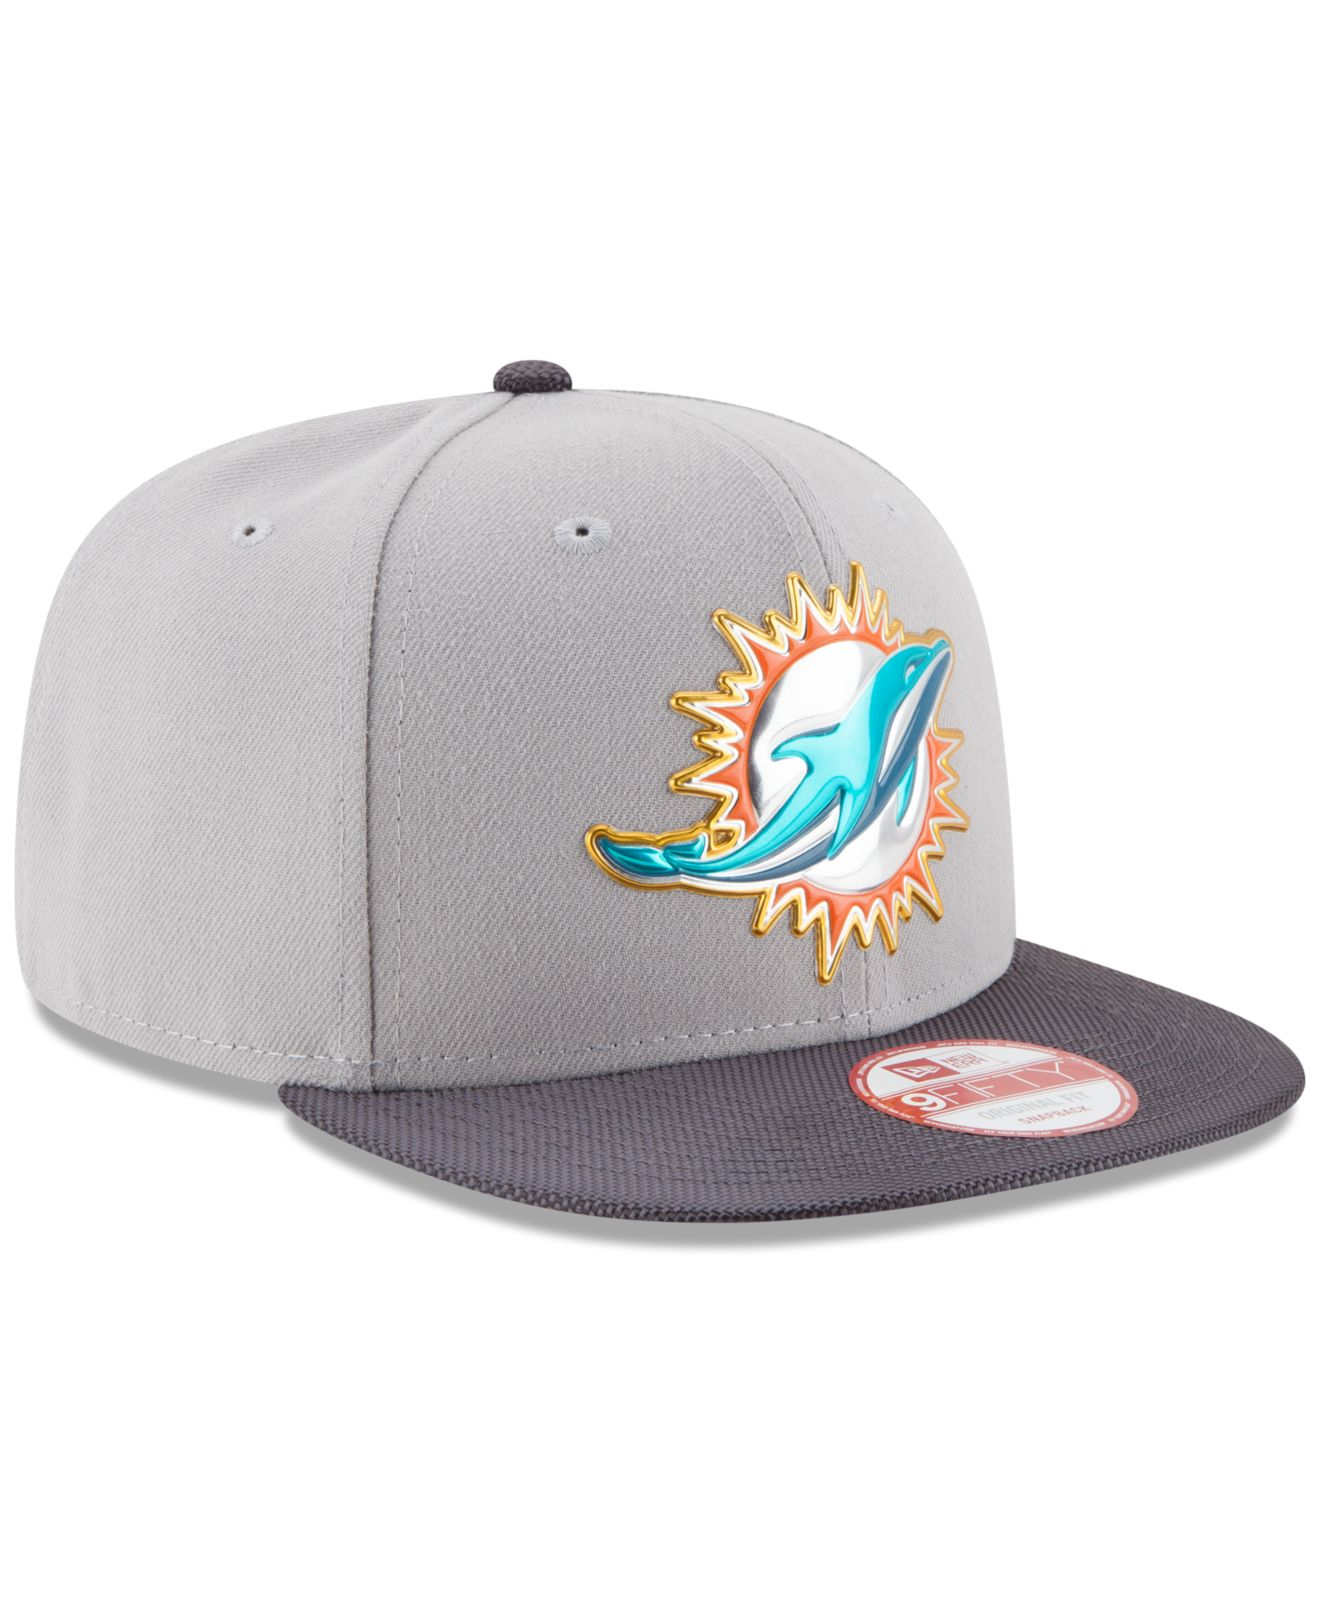 1b819c21593 Lyst - KTZ Miami Dolphins Gold Collection 9fifty Snapback Cap in ...